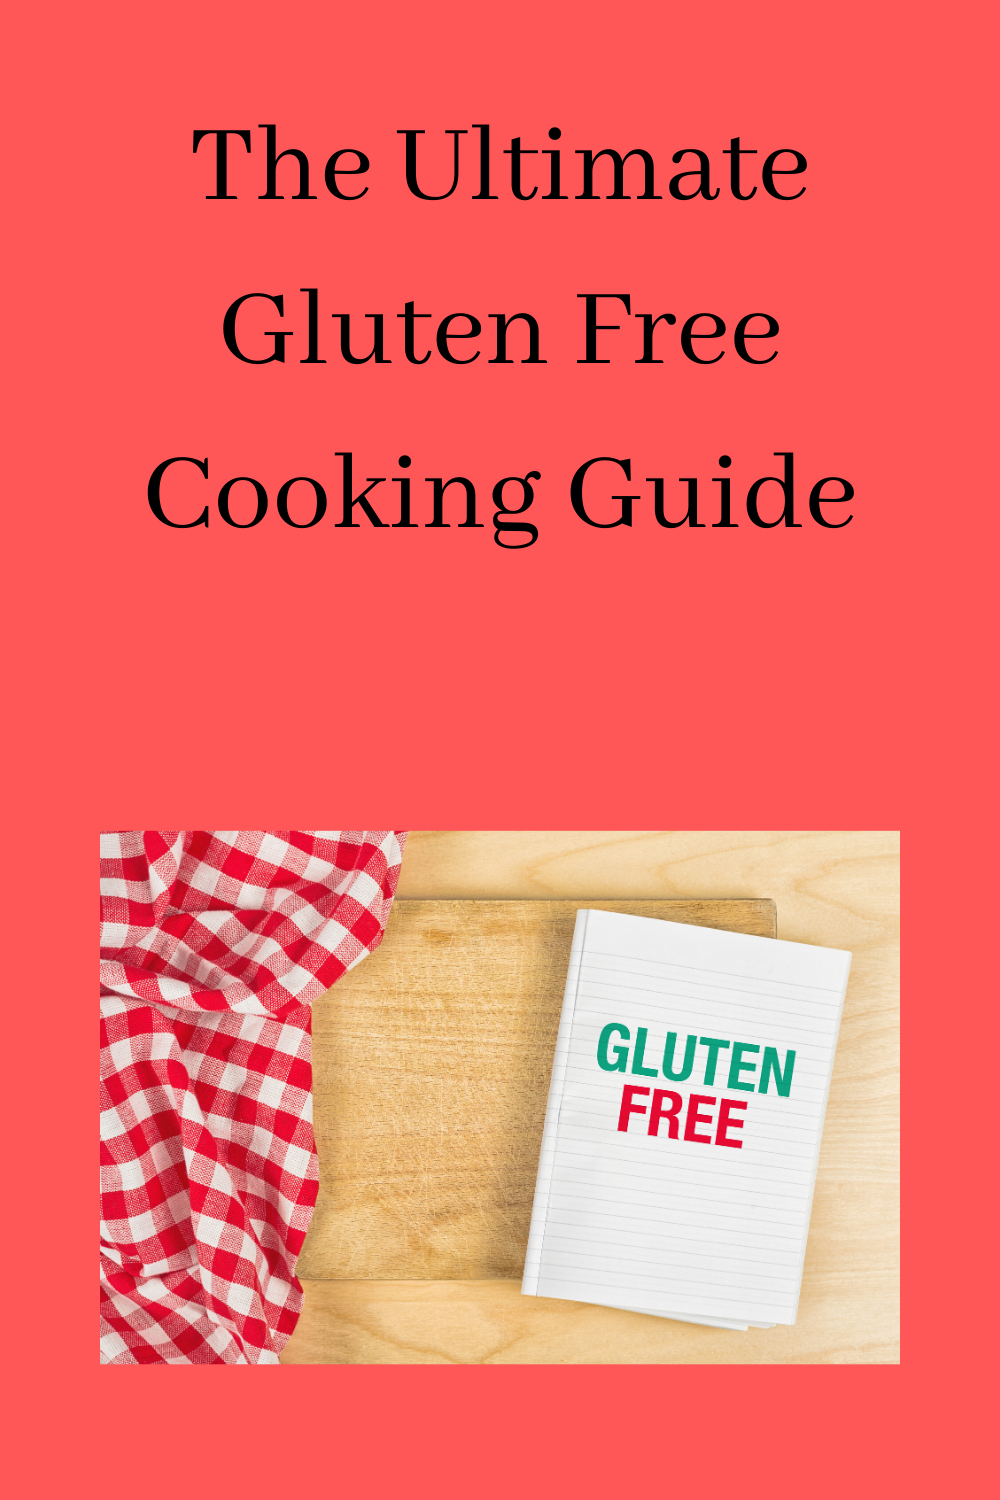 gluten free cooking guide